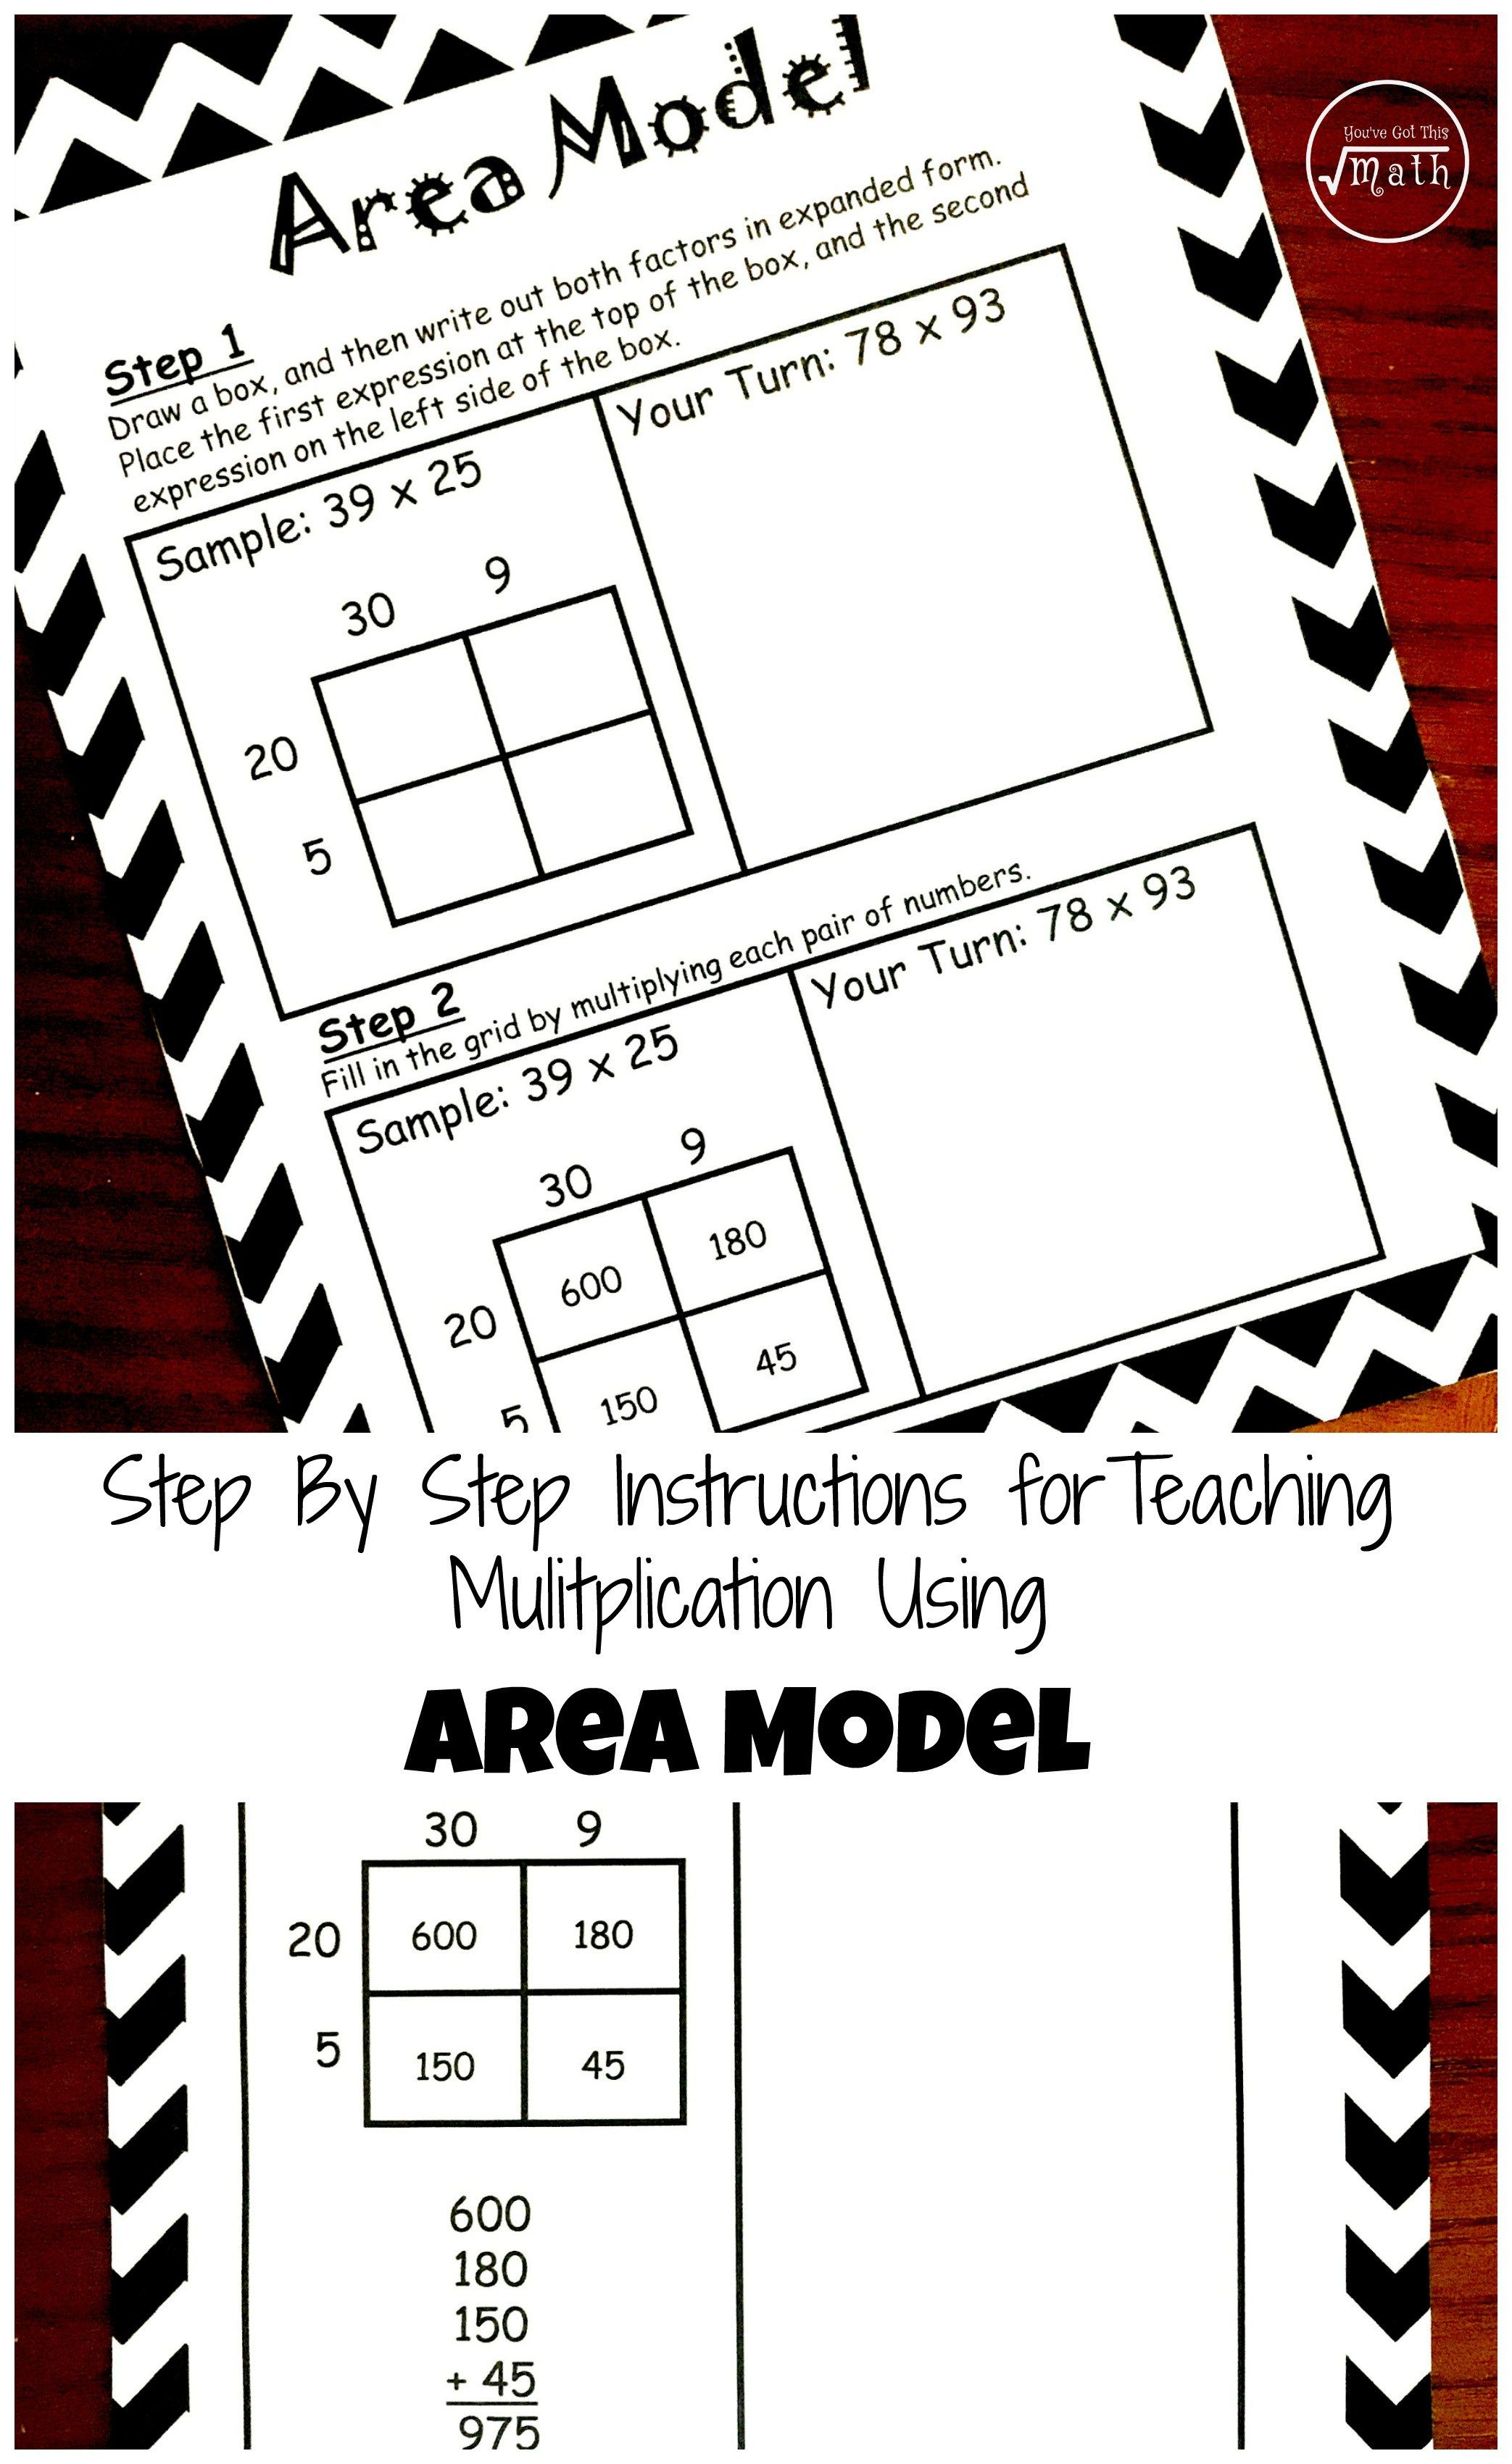 How to Teach Multiplication Using Area Model (Free Printable) | Kid ...